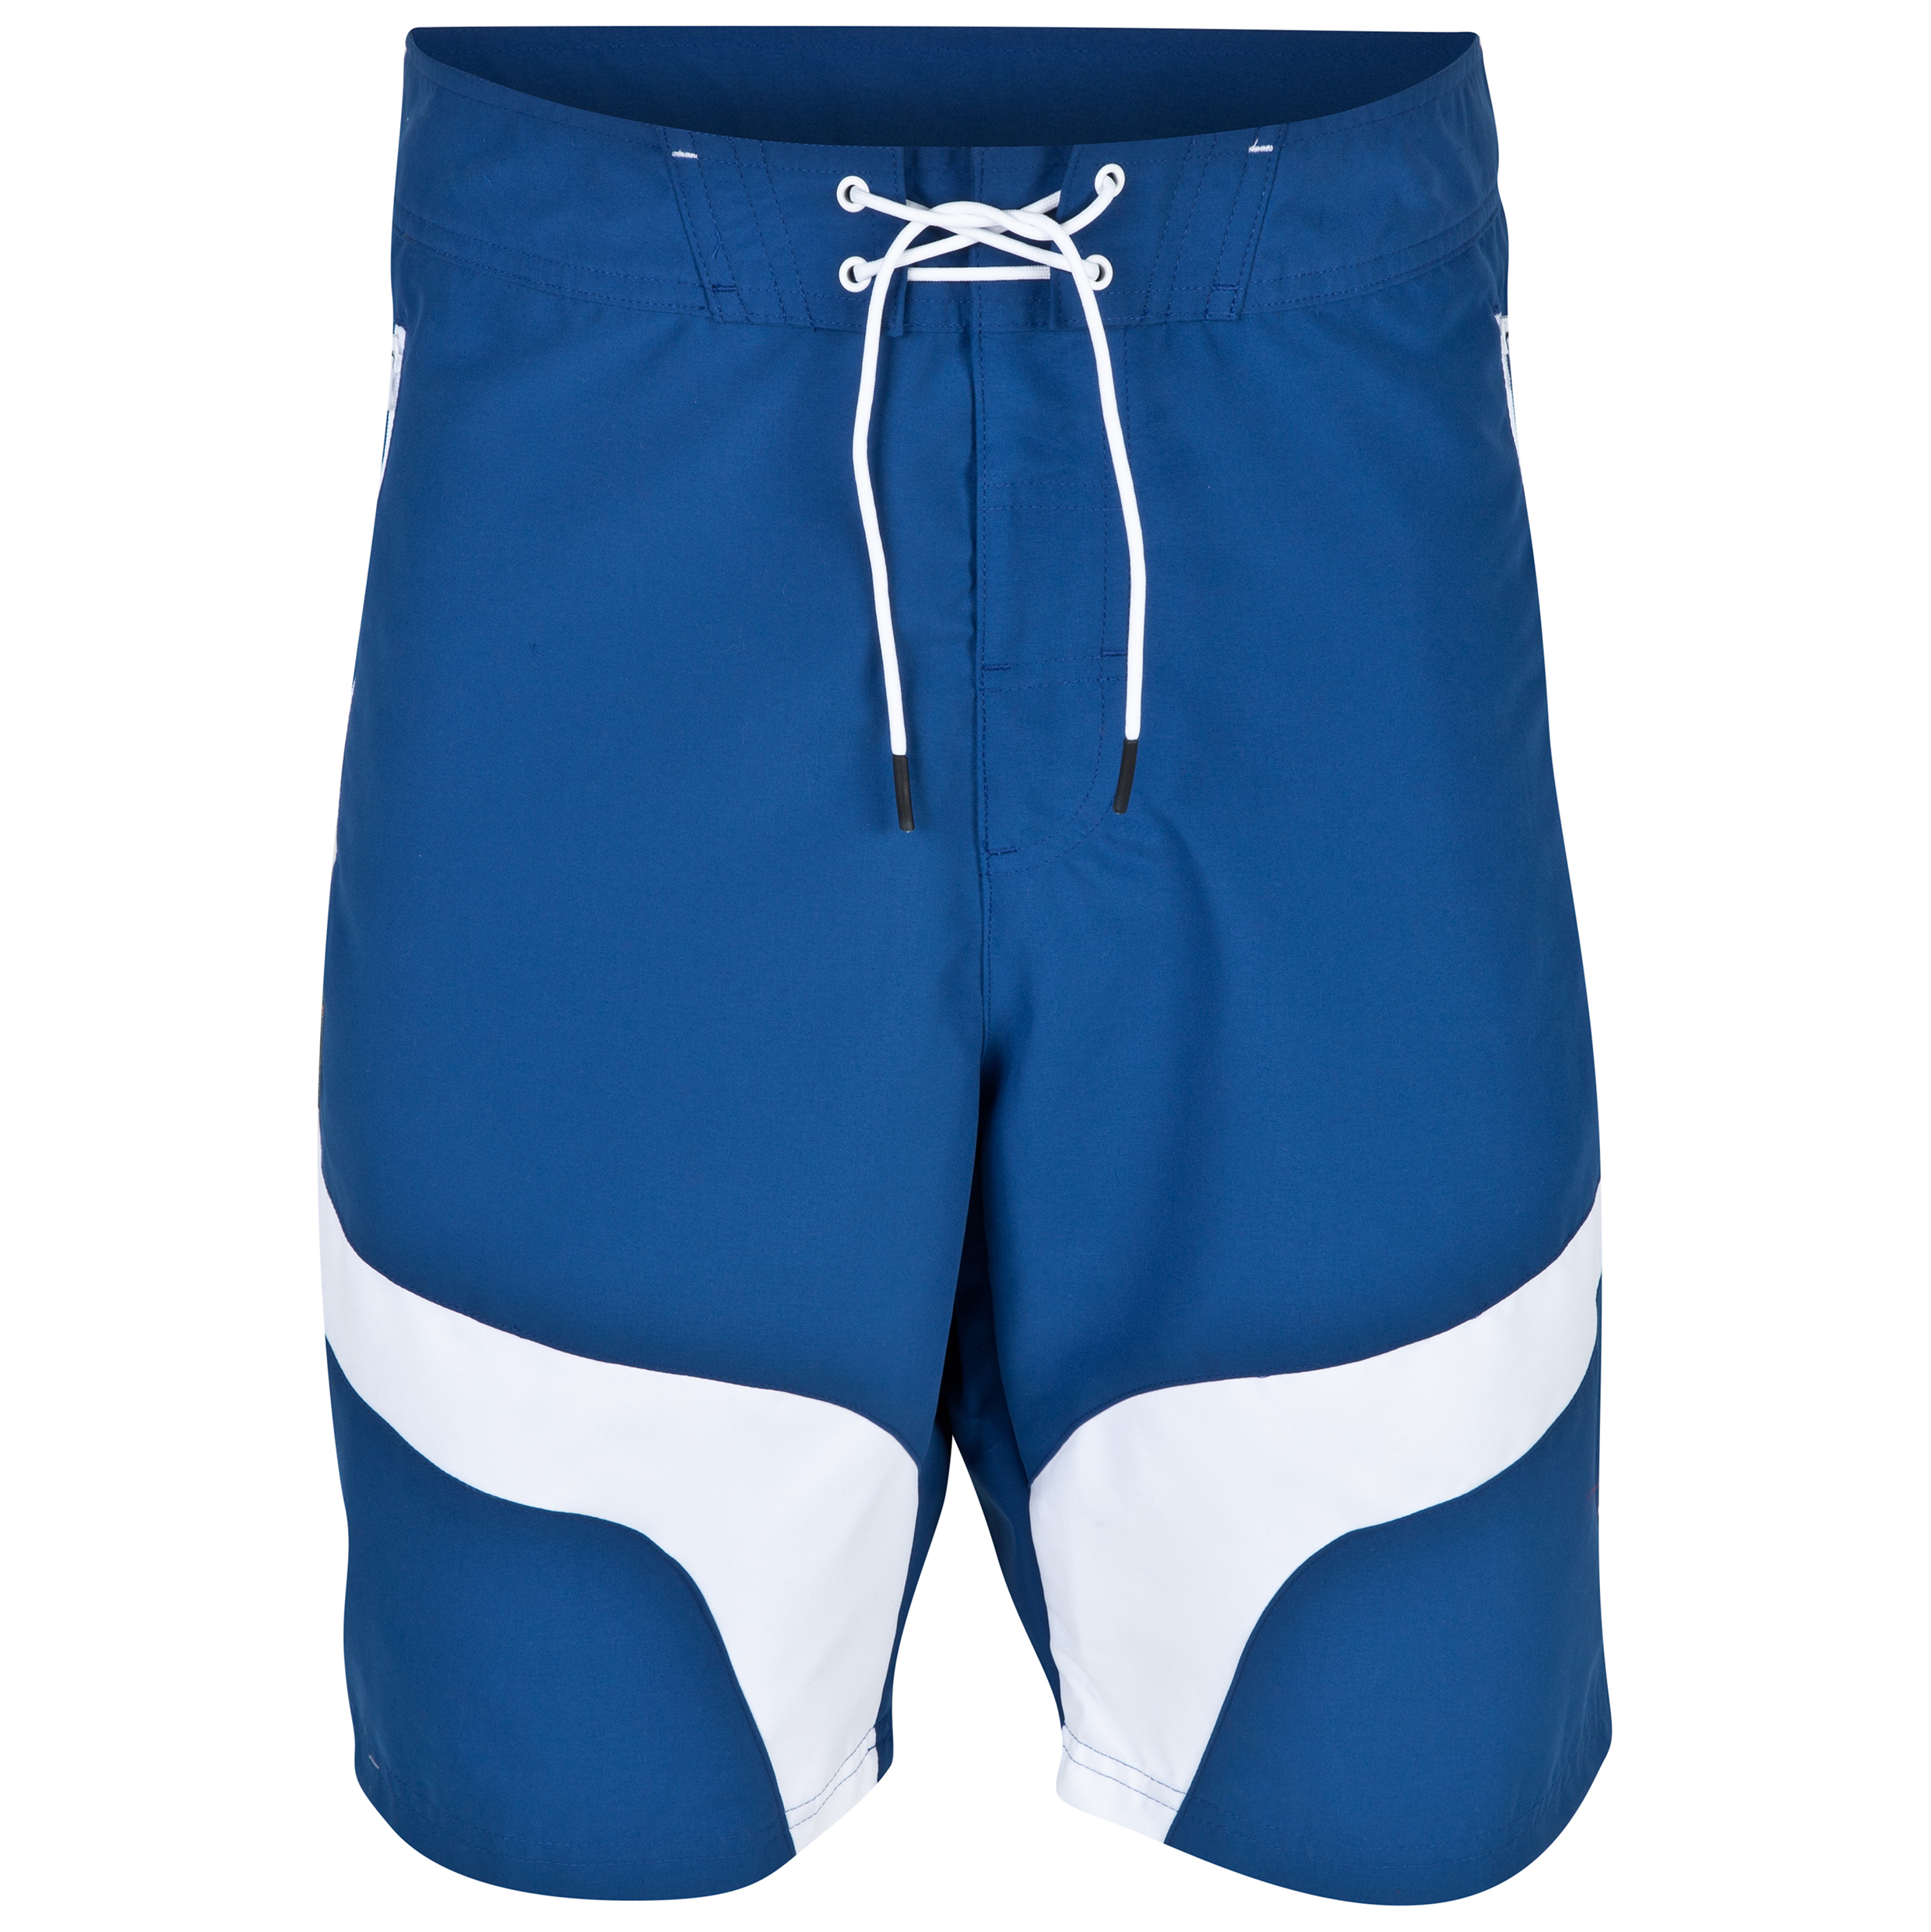 Scuderia Ferrari Board Shorts Blue